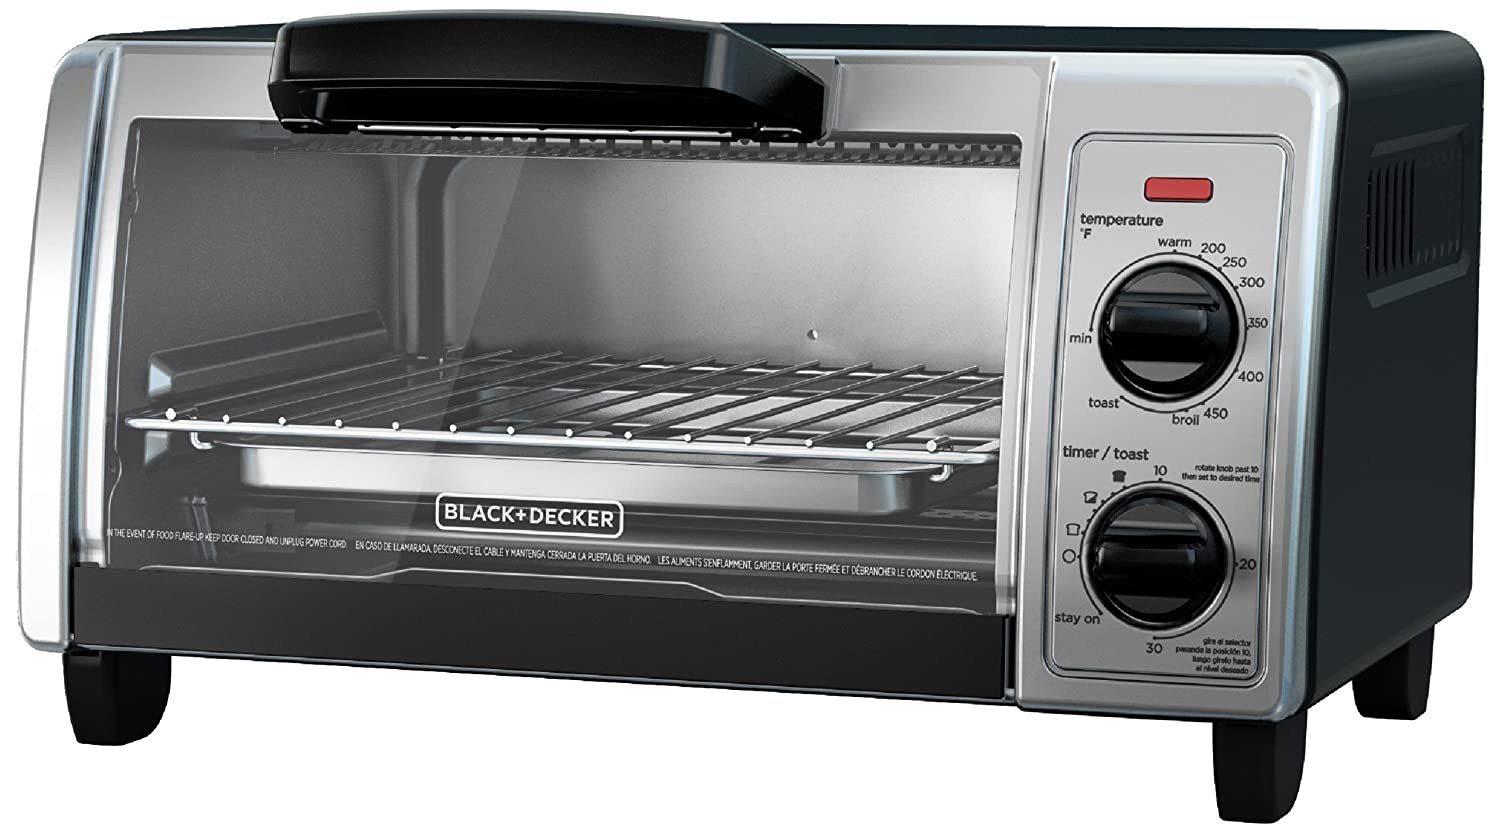 Amazon.com: BLACK+DECKER 4-Slice Toaster Oven with Easy Controls, Stainless Steel, TO1705SB: Kitchen & Dining